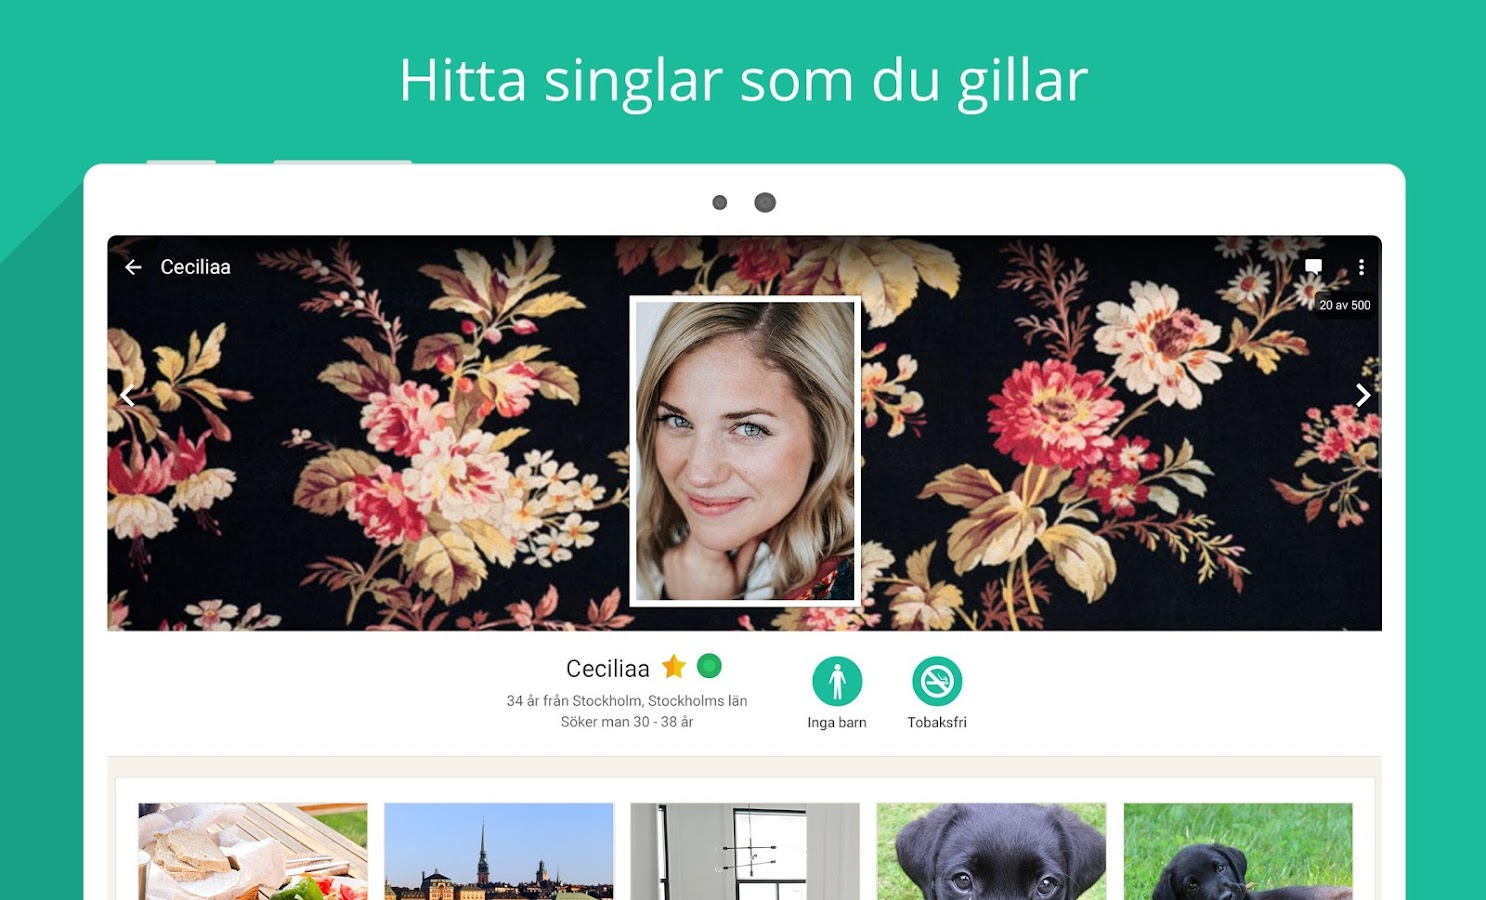 seriös dejting dating